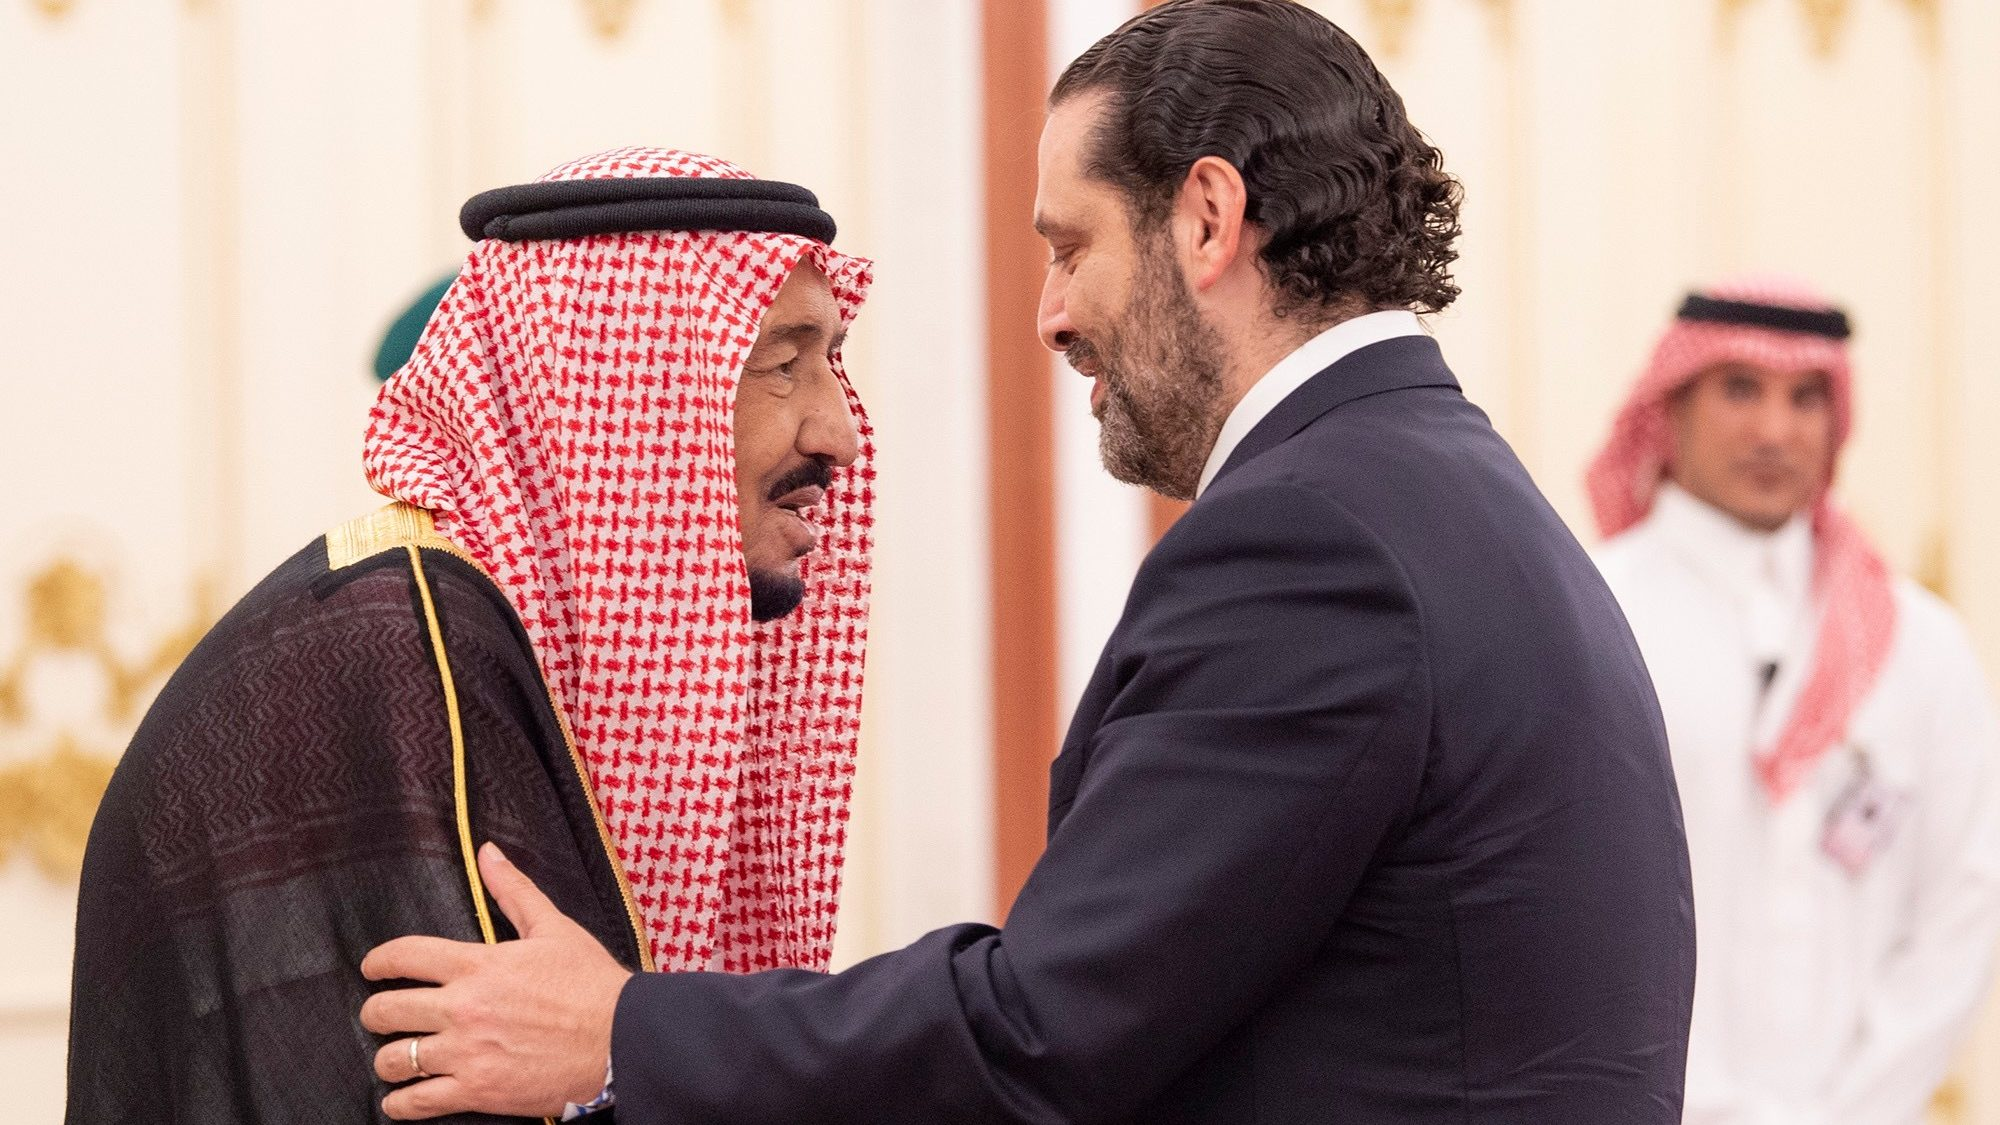 Saudi Arabia Proposed a Financial Handout to Lebanon but Foreign Policy Experts are Skeptical